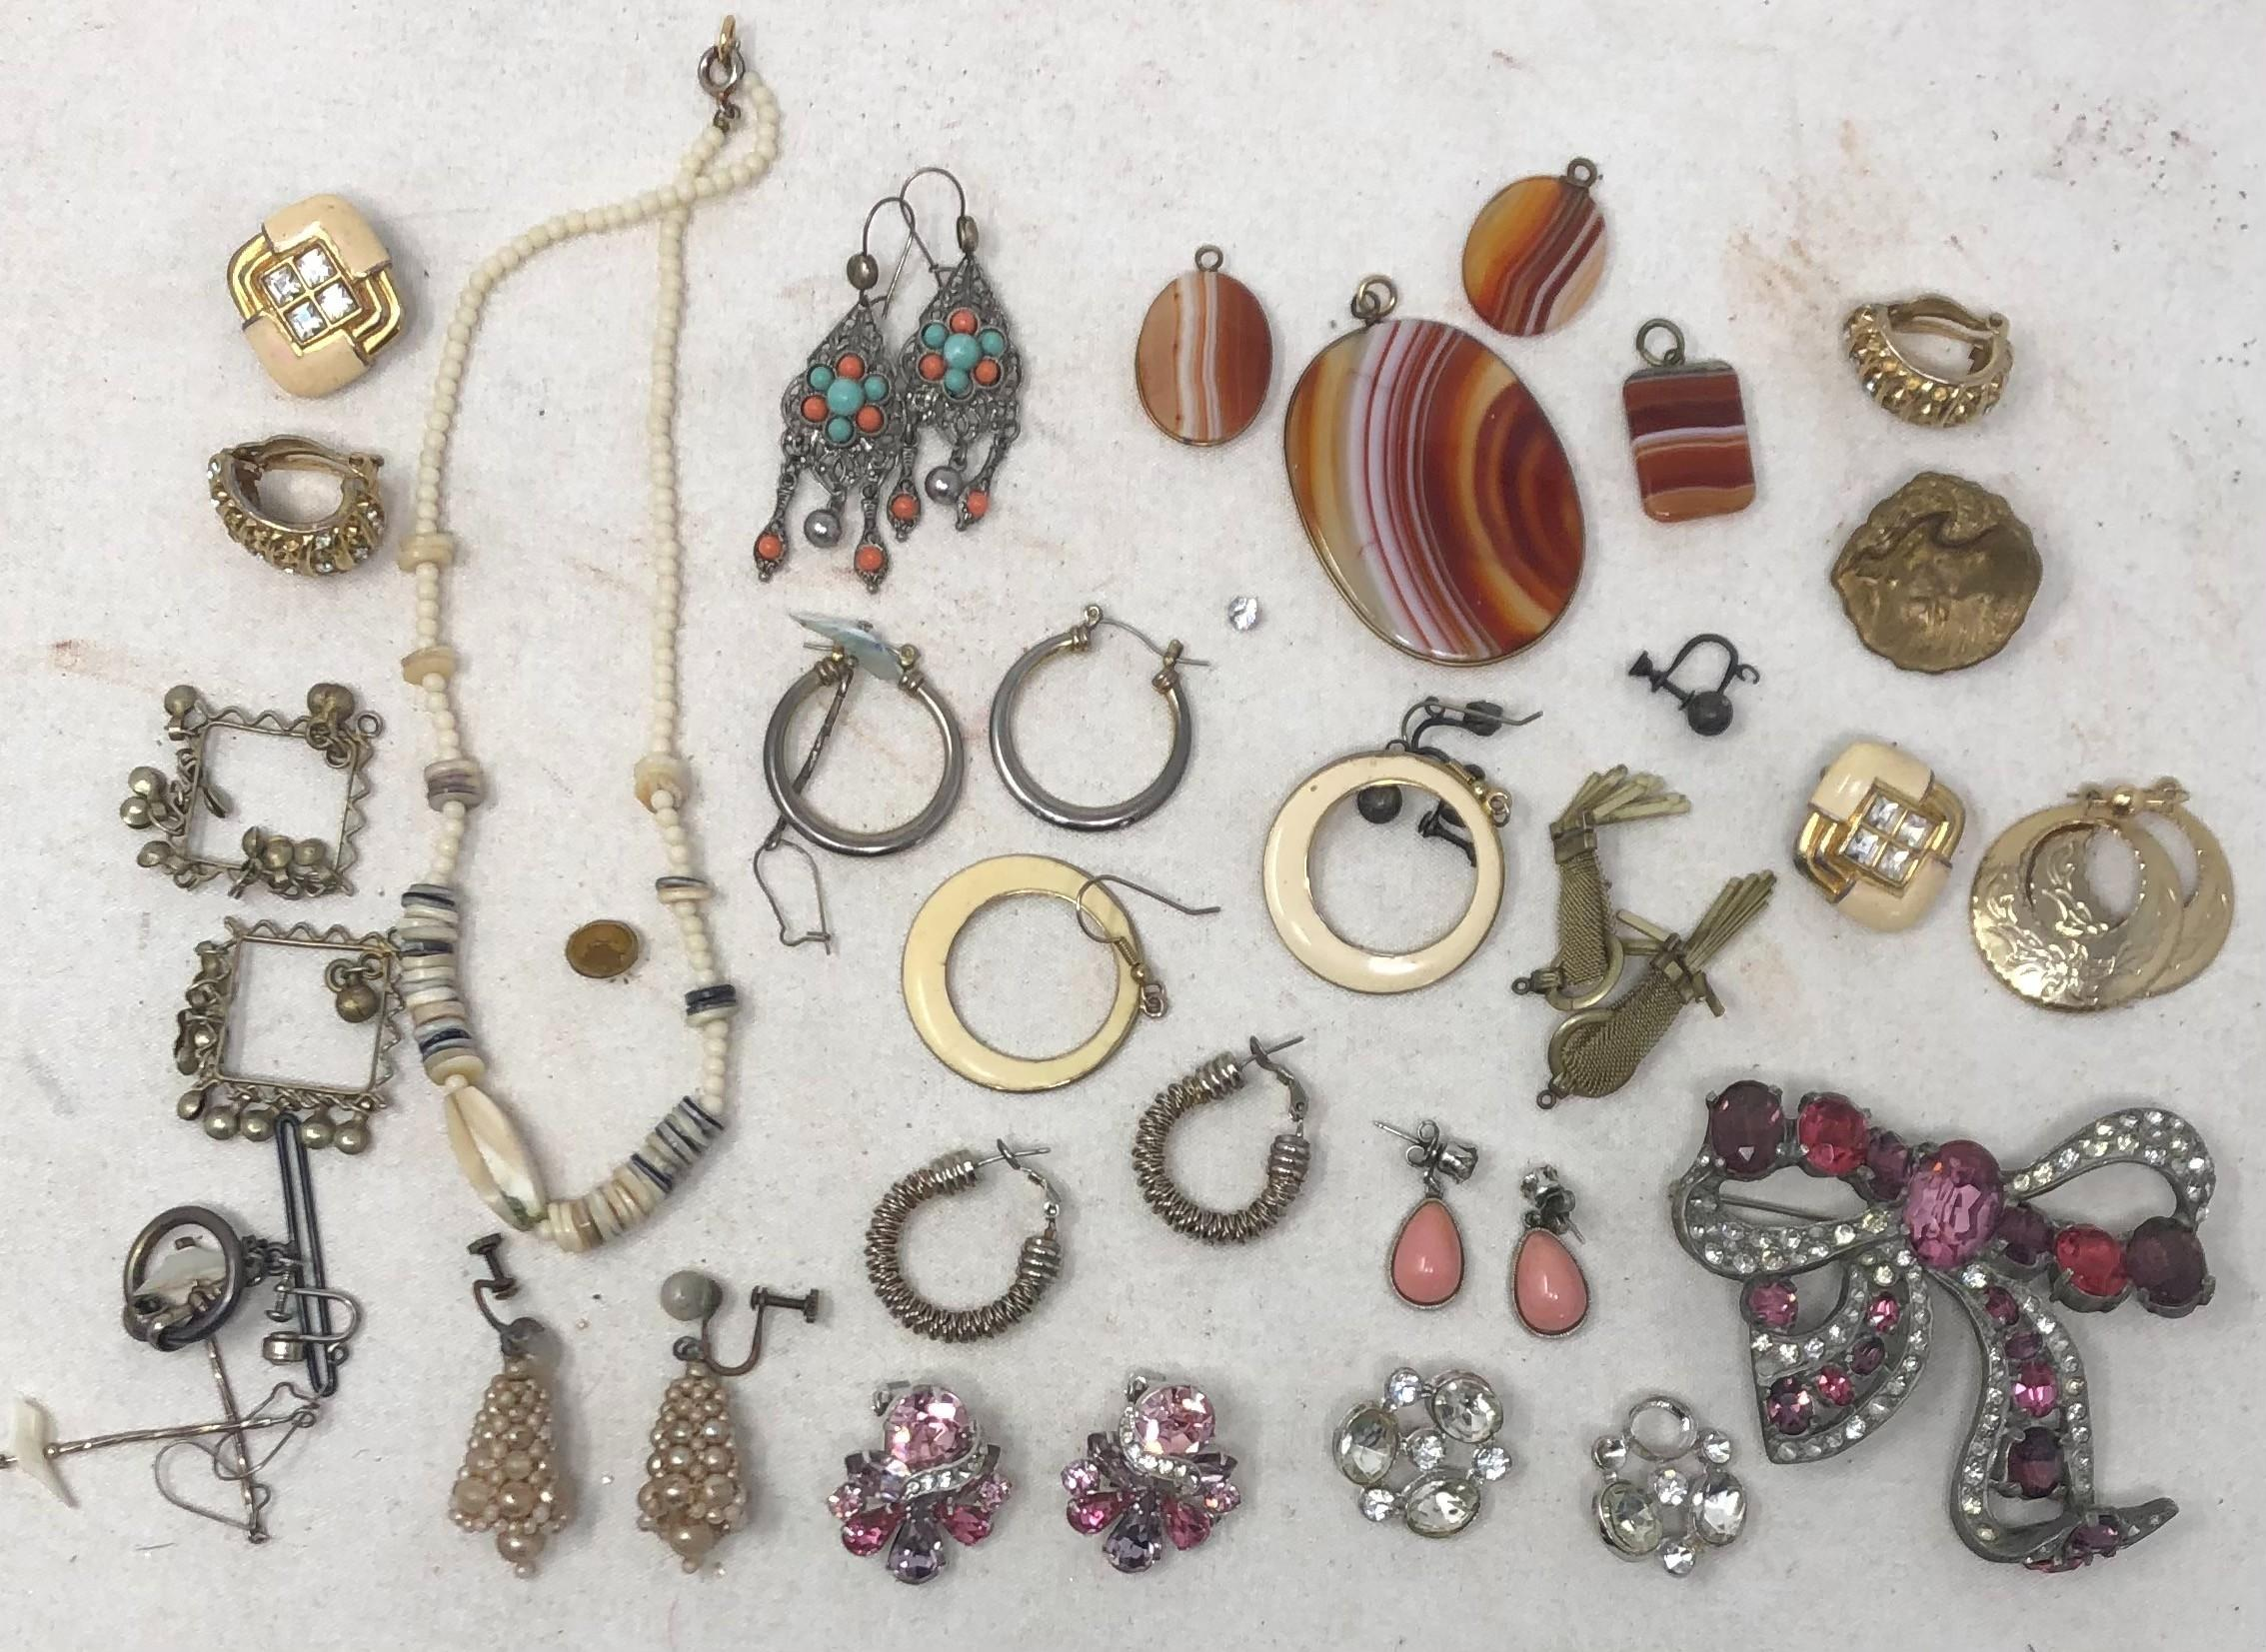 Group of costume jewelry include white bead necklace, length 14 inches; large floral form rhinestone brooch, illegibly marked Fisenheuer, fifteen pairs of earrings, some with rhinestones, colored beads, brass; four br...